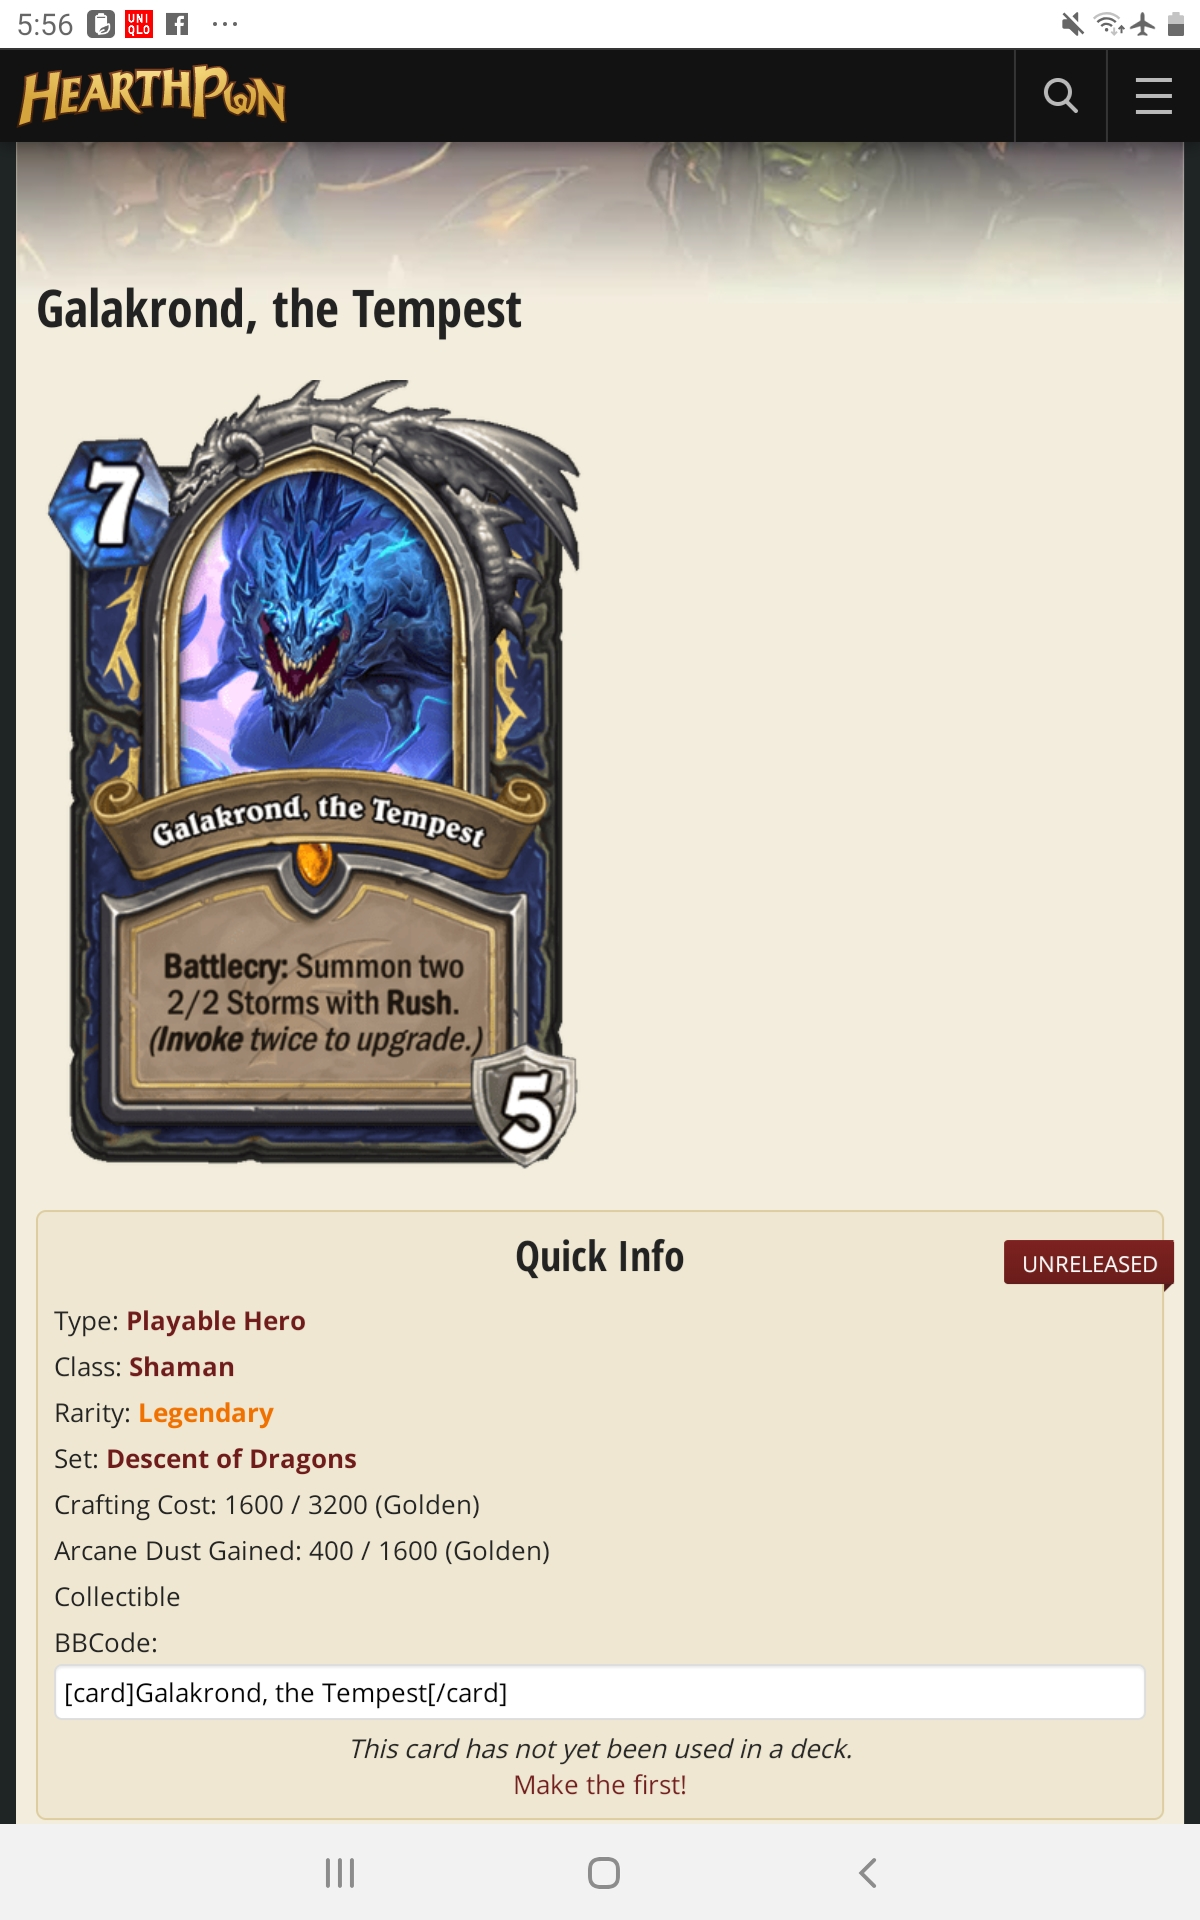 I was thinking of submitting something linked. Veldora goes into hearthstone,but with a new first name ...